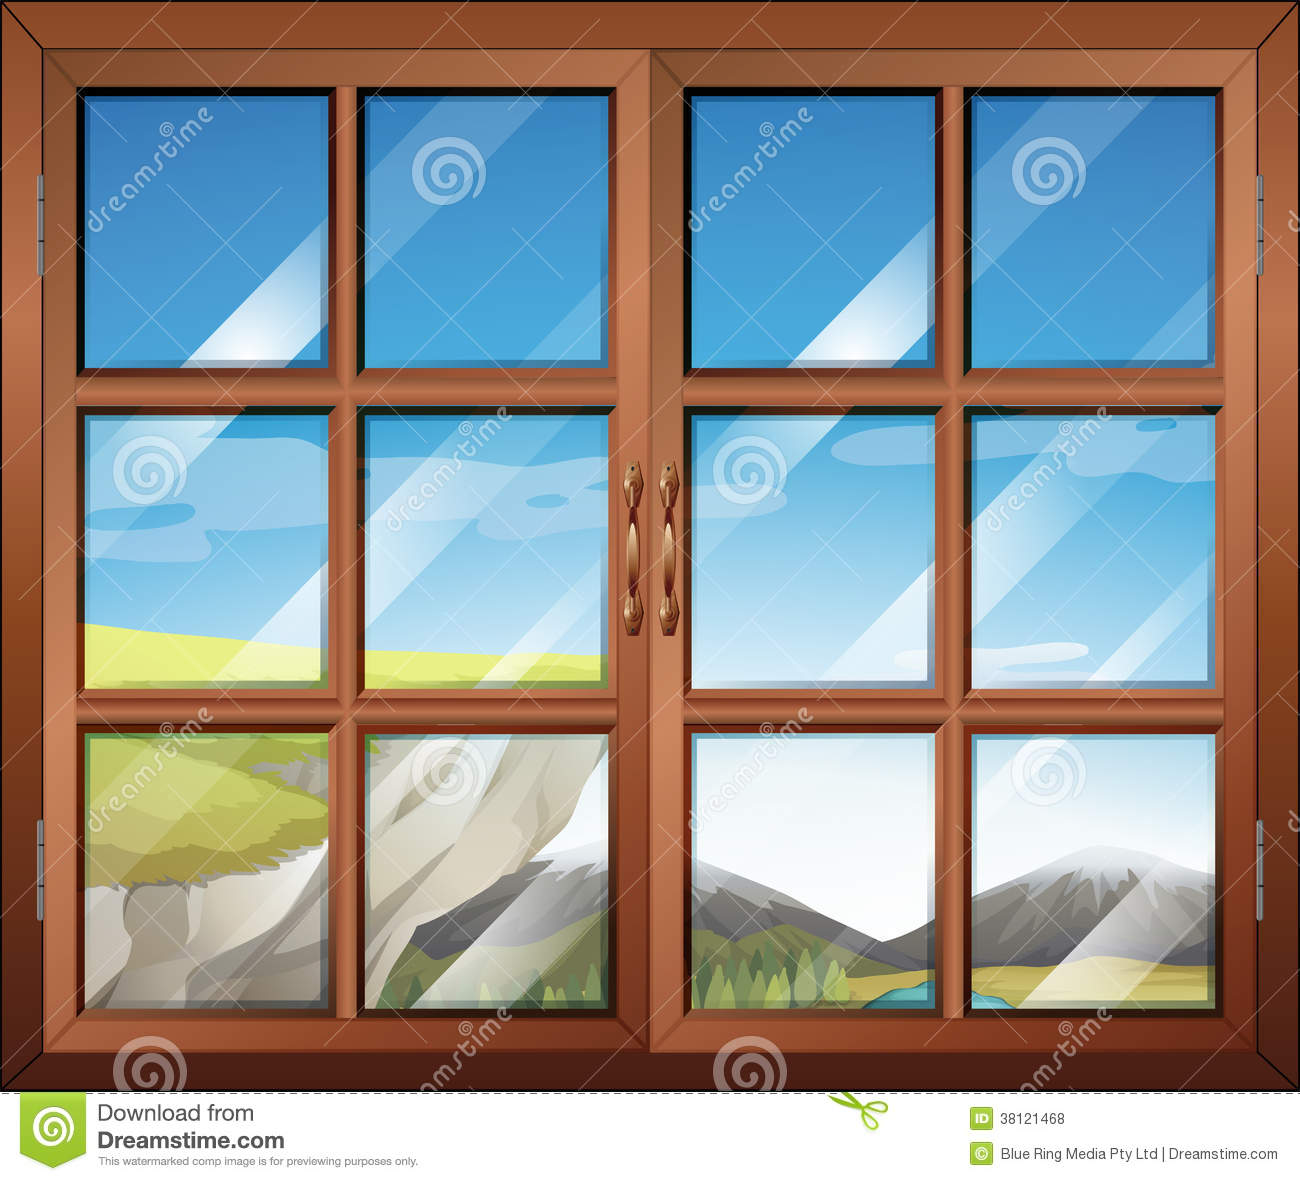 Une fen tre ferm e illustration de vecteur illustration for Affichage fenetre miniature windows 7